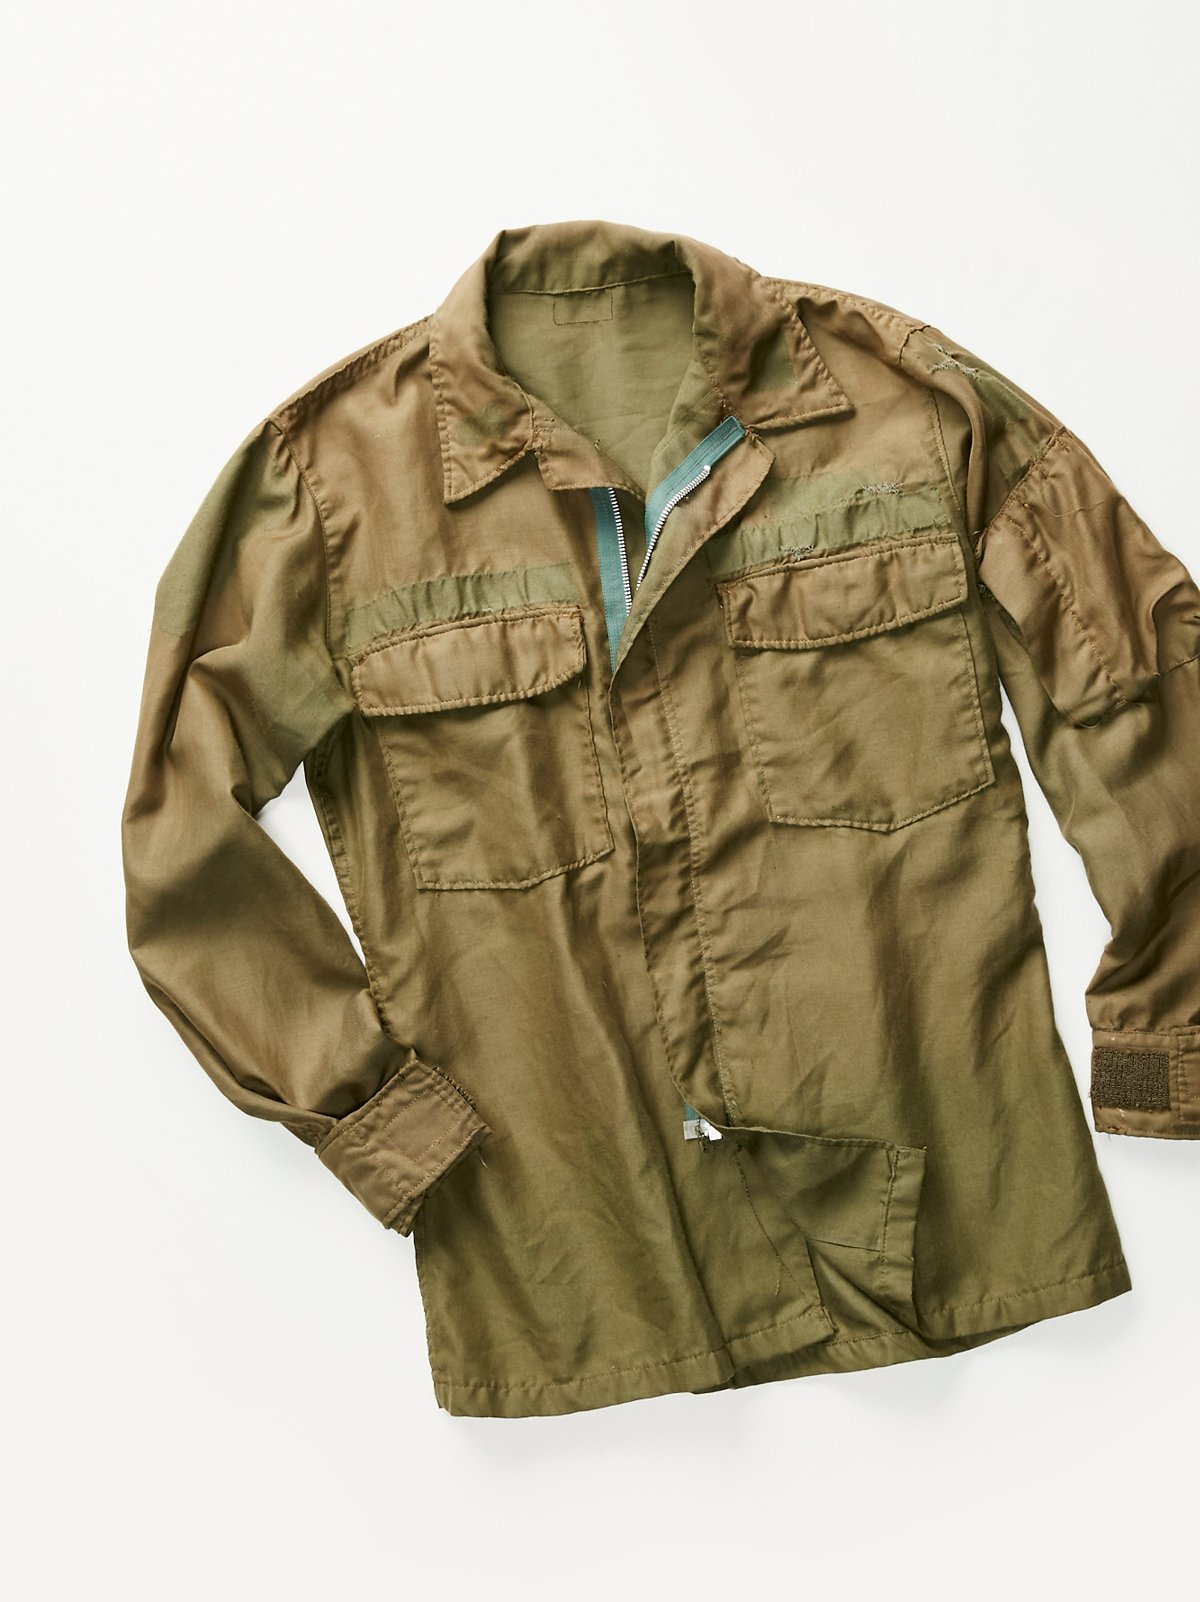 Vintage 1970s Military Shirt